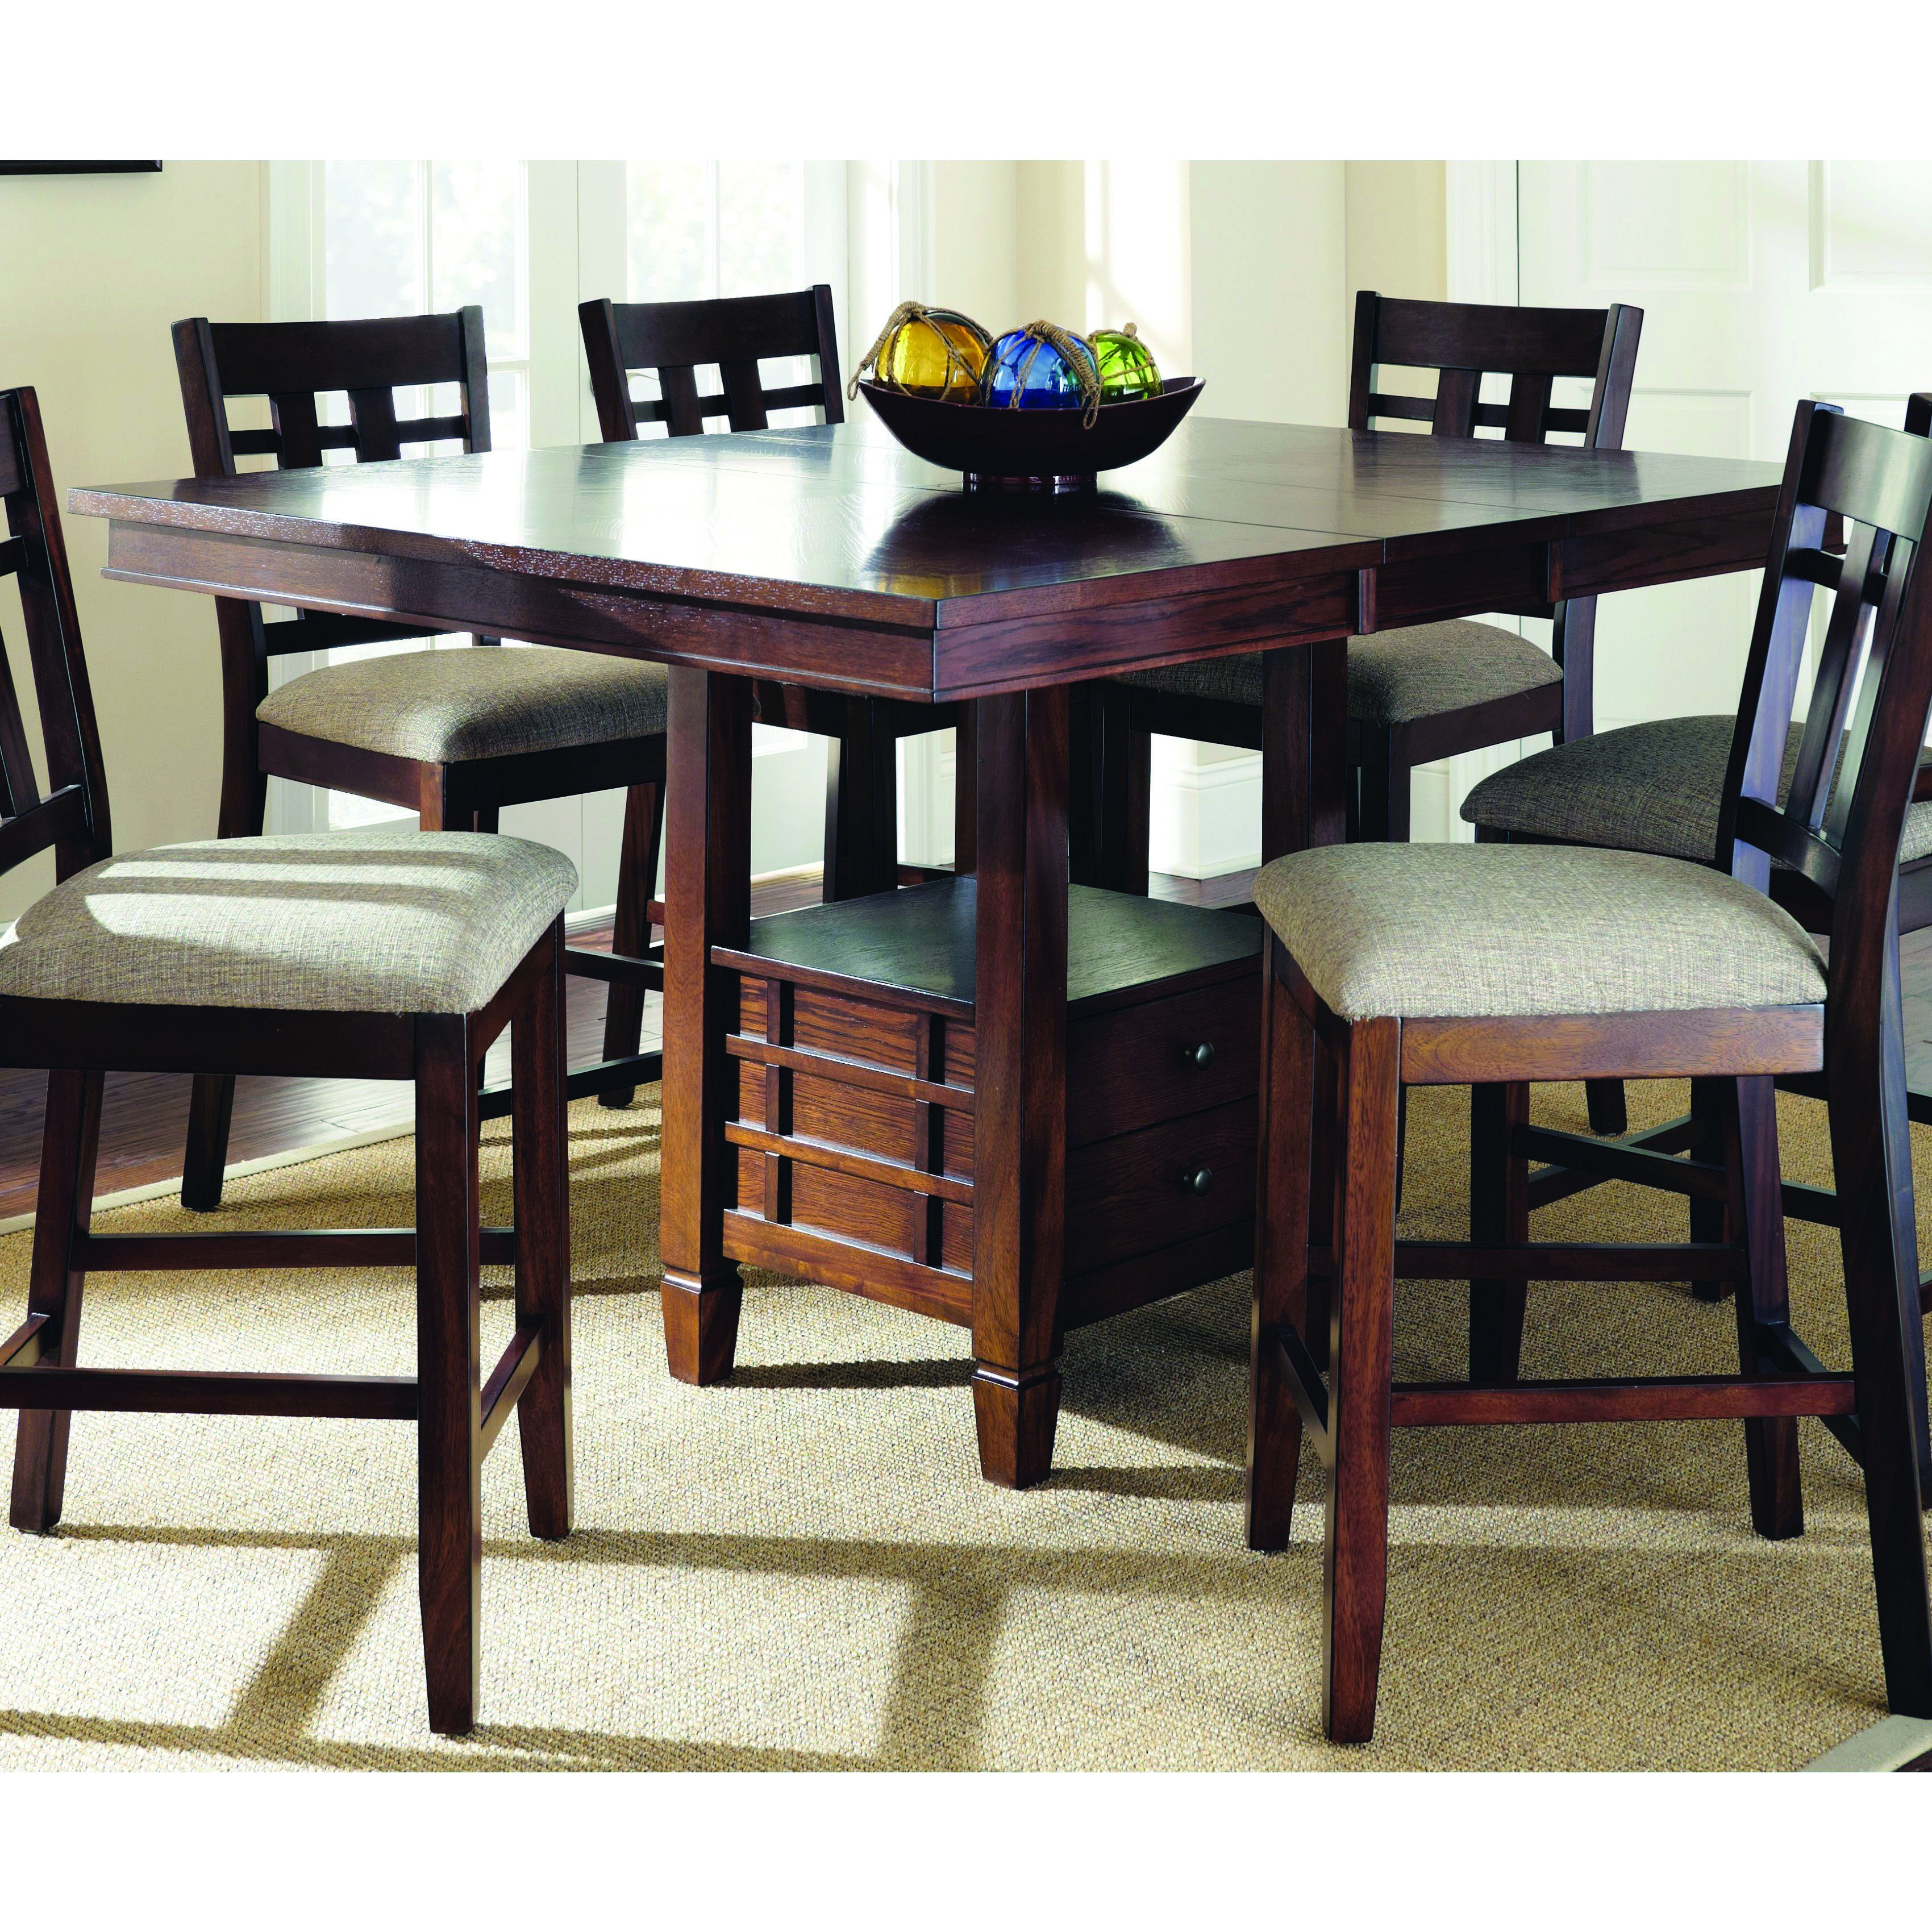 Diffe Modern Dining Room Furniture South Africa To Inspire You